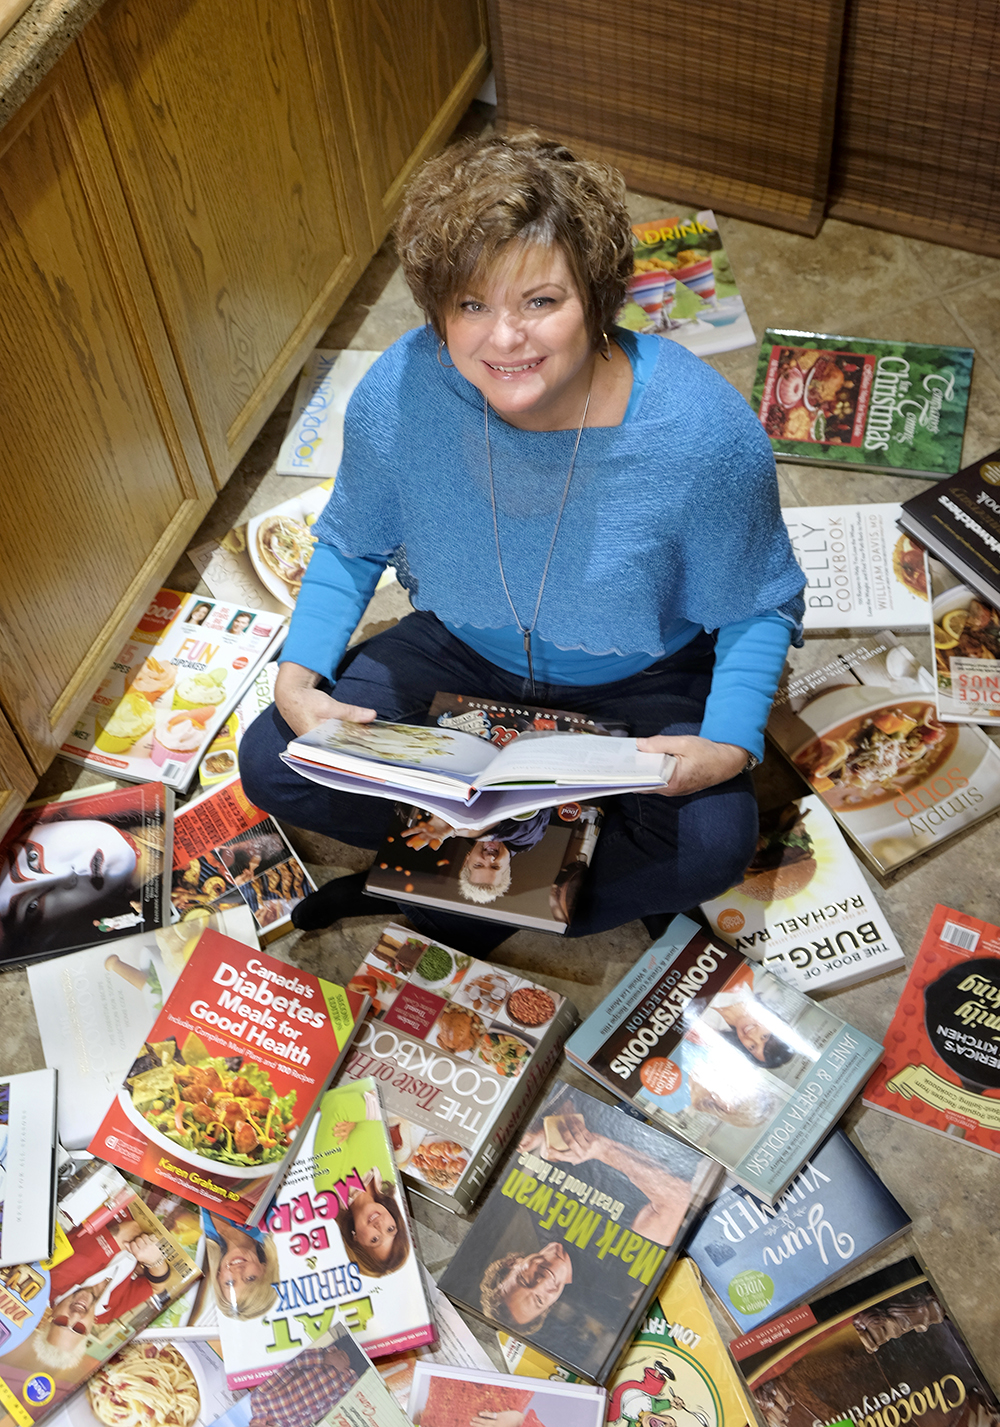 woman with short hair, blue long-sleeve shirt and jeans sits in middle of kitchen surrounded by cook books